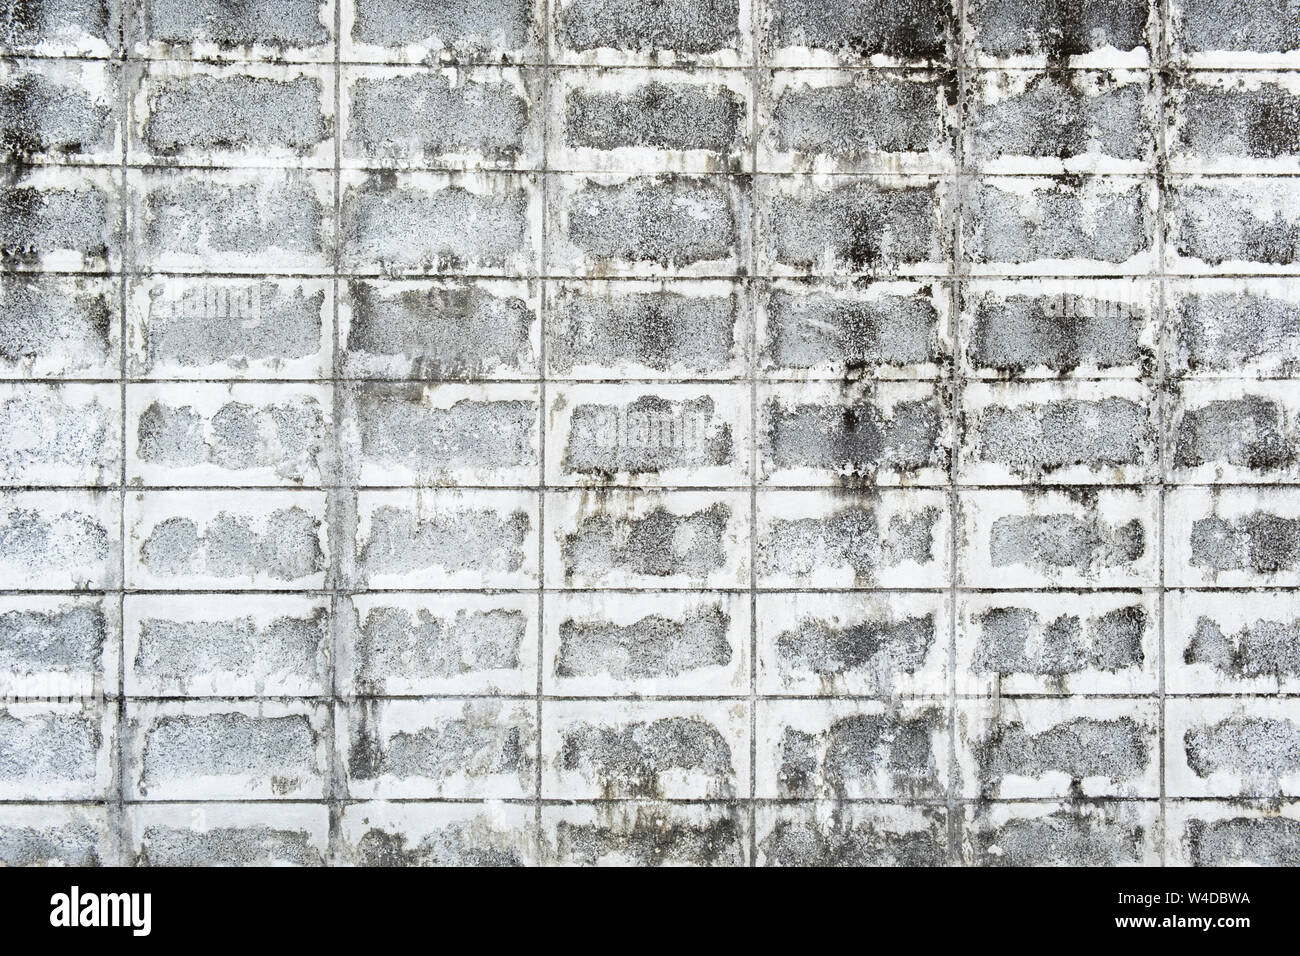 Urban background, white ruined industrial concrete brick wall . Stock Photo